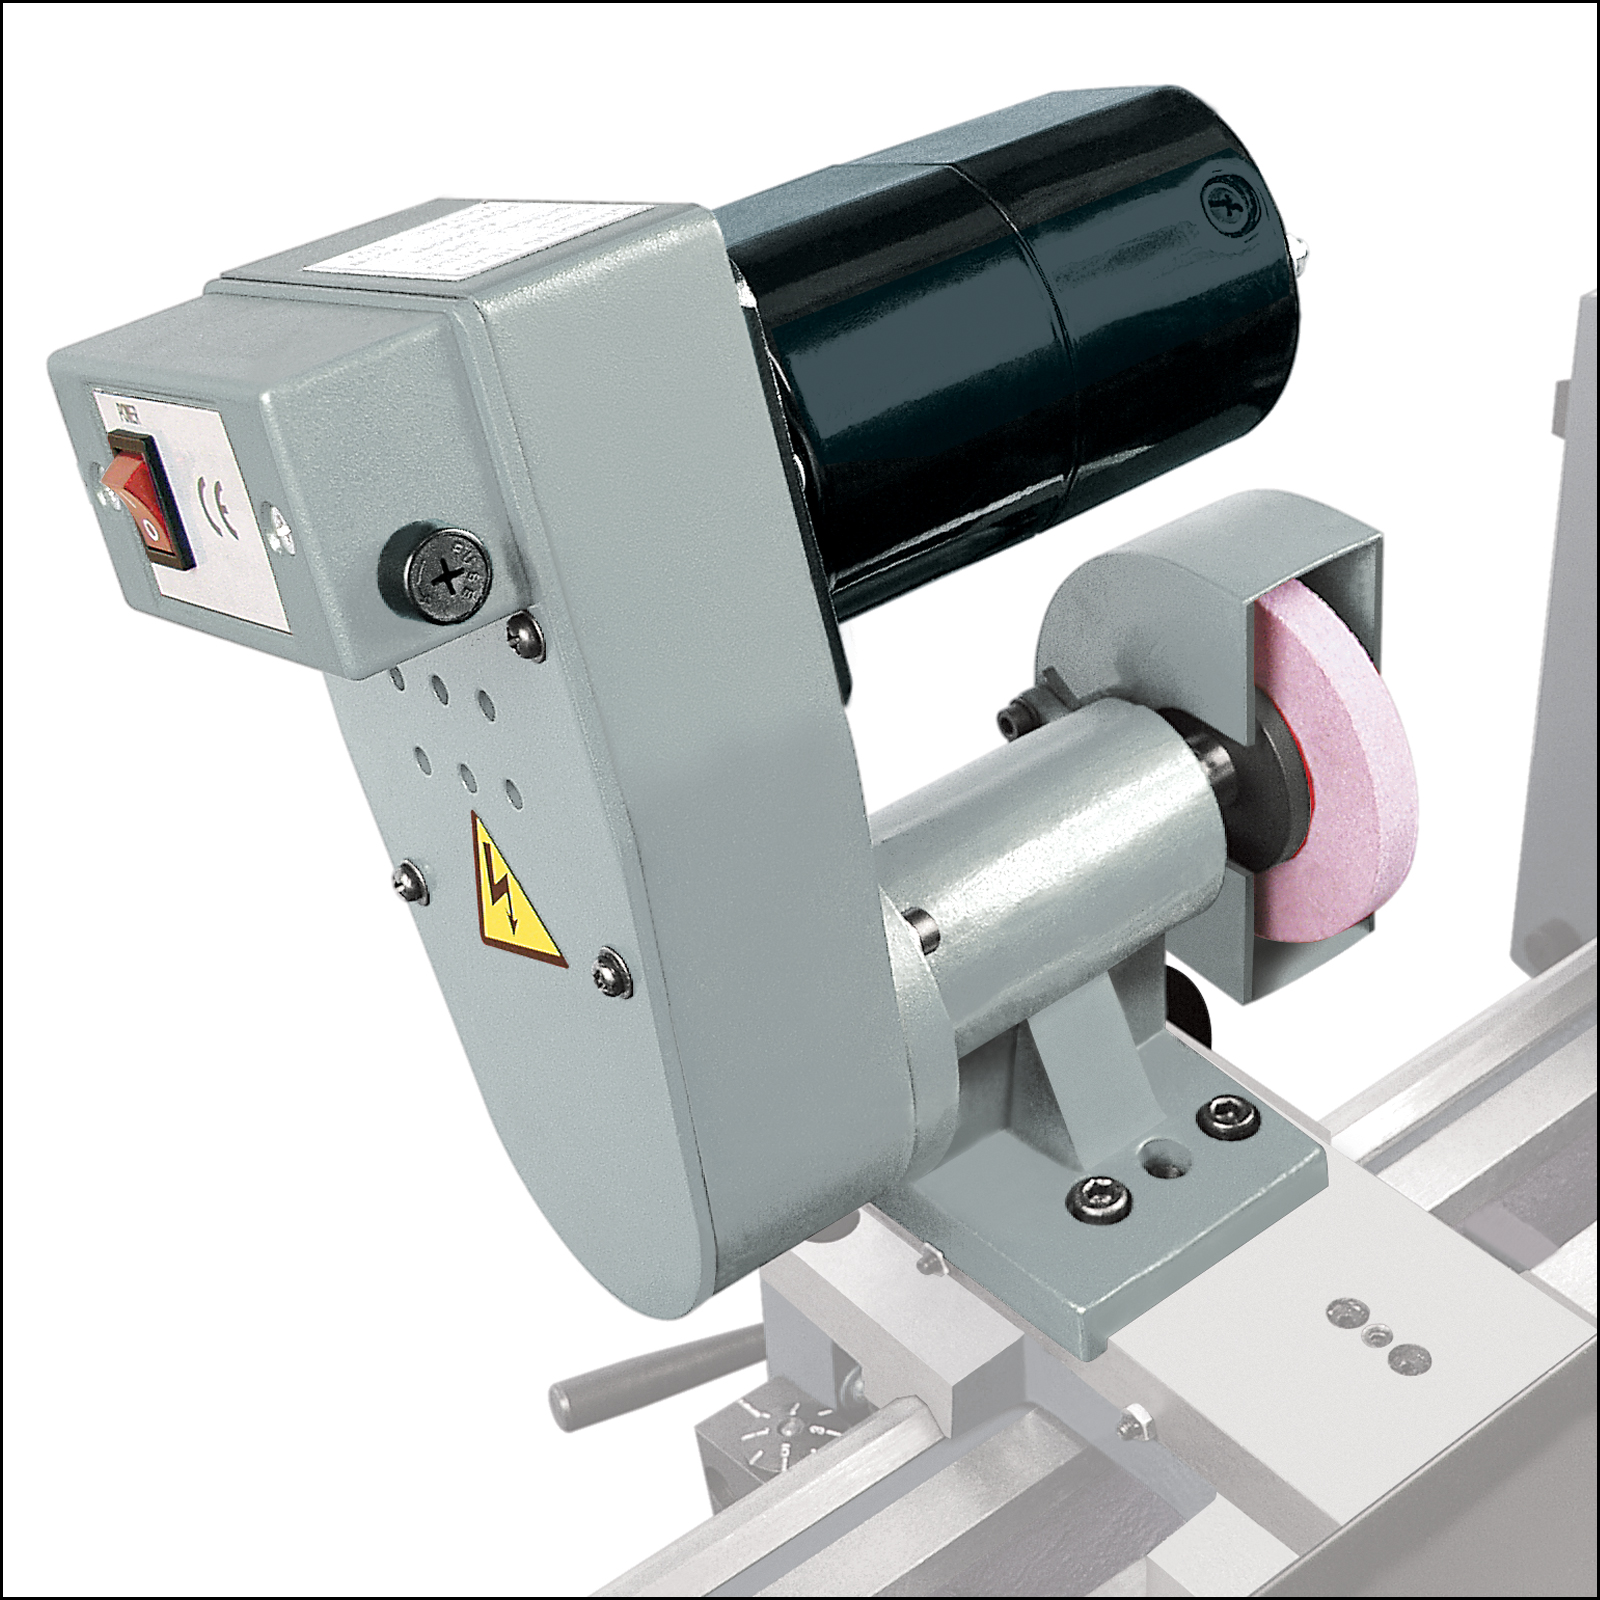 Phenomenal Grinder Attachment For Mini Lathes Forskolin Free Trial Chair Design Images Forskolin Free Trialorg